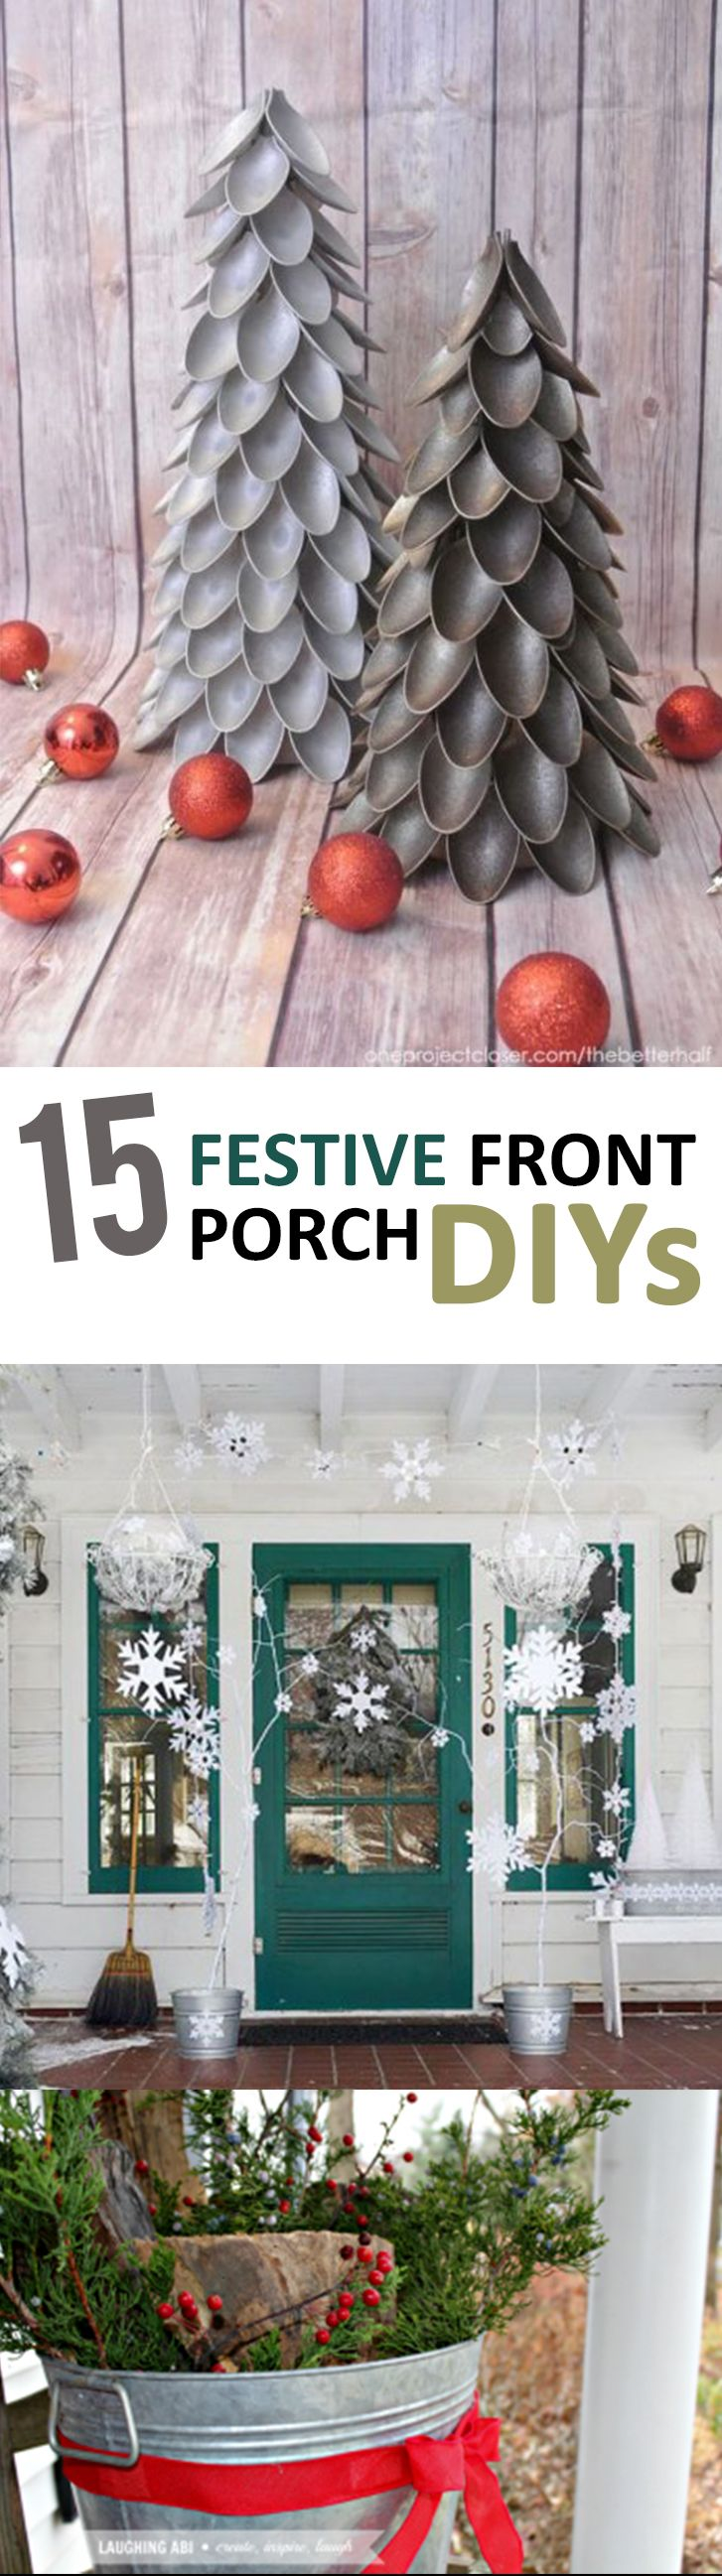 Fruit over the door christmas decoration - Best 25 Christmas Porch Decorations Ideas Only On Pinterest Christmas Decor Christmas Porch And Winter Porch Decorations